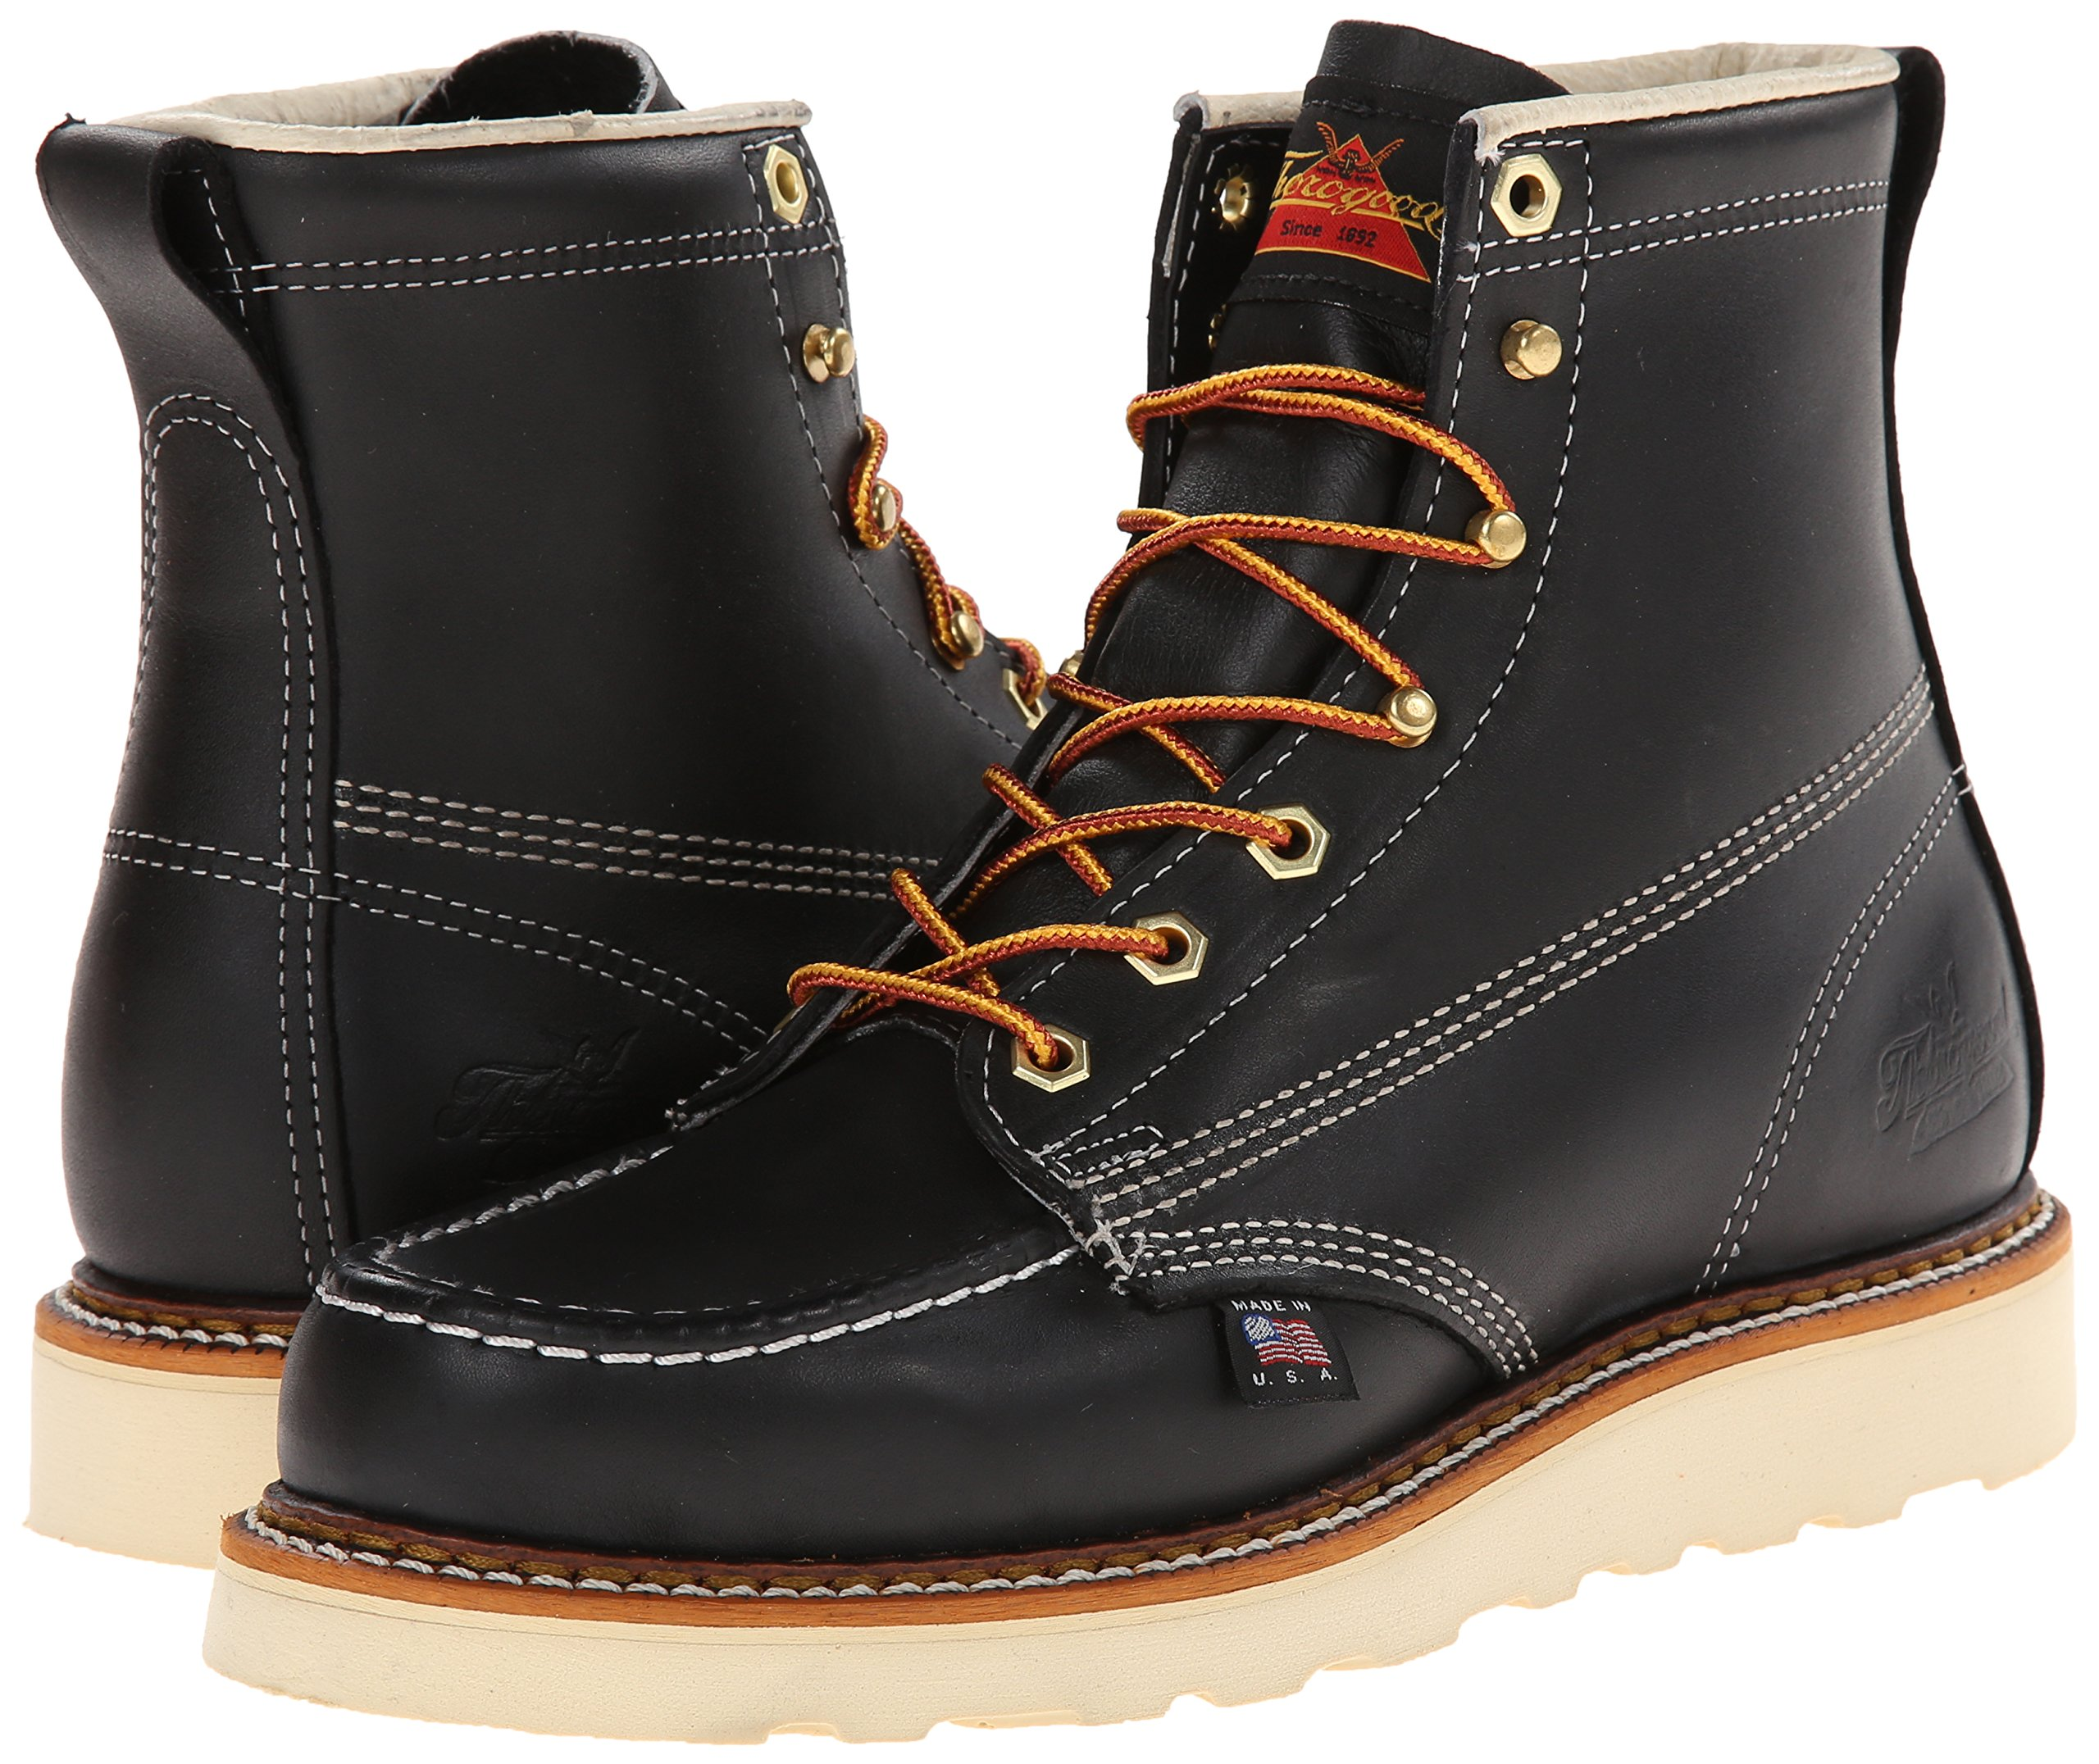 Thorogood-American-Heritage-Men-039-s-6-034-Moc-Toe-Max-Wedge-Non-Safety-Boots thumbnail 7